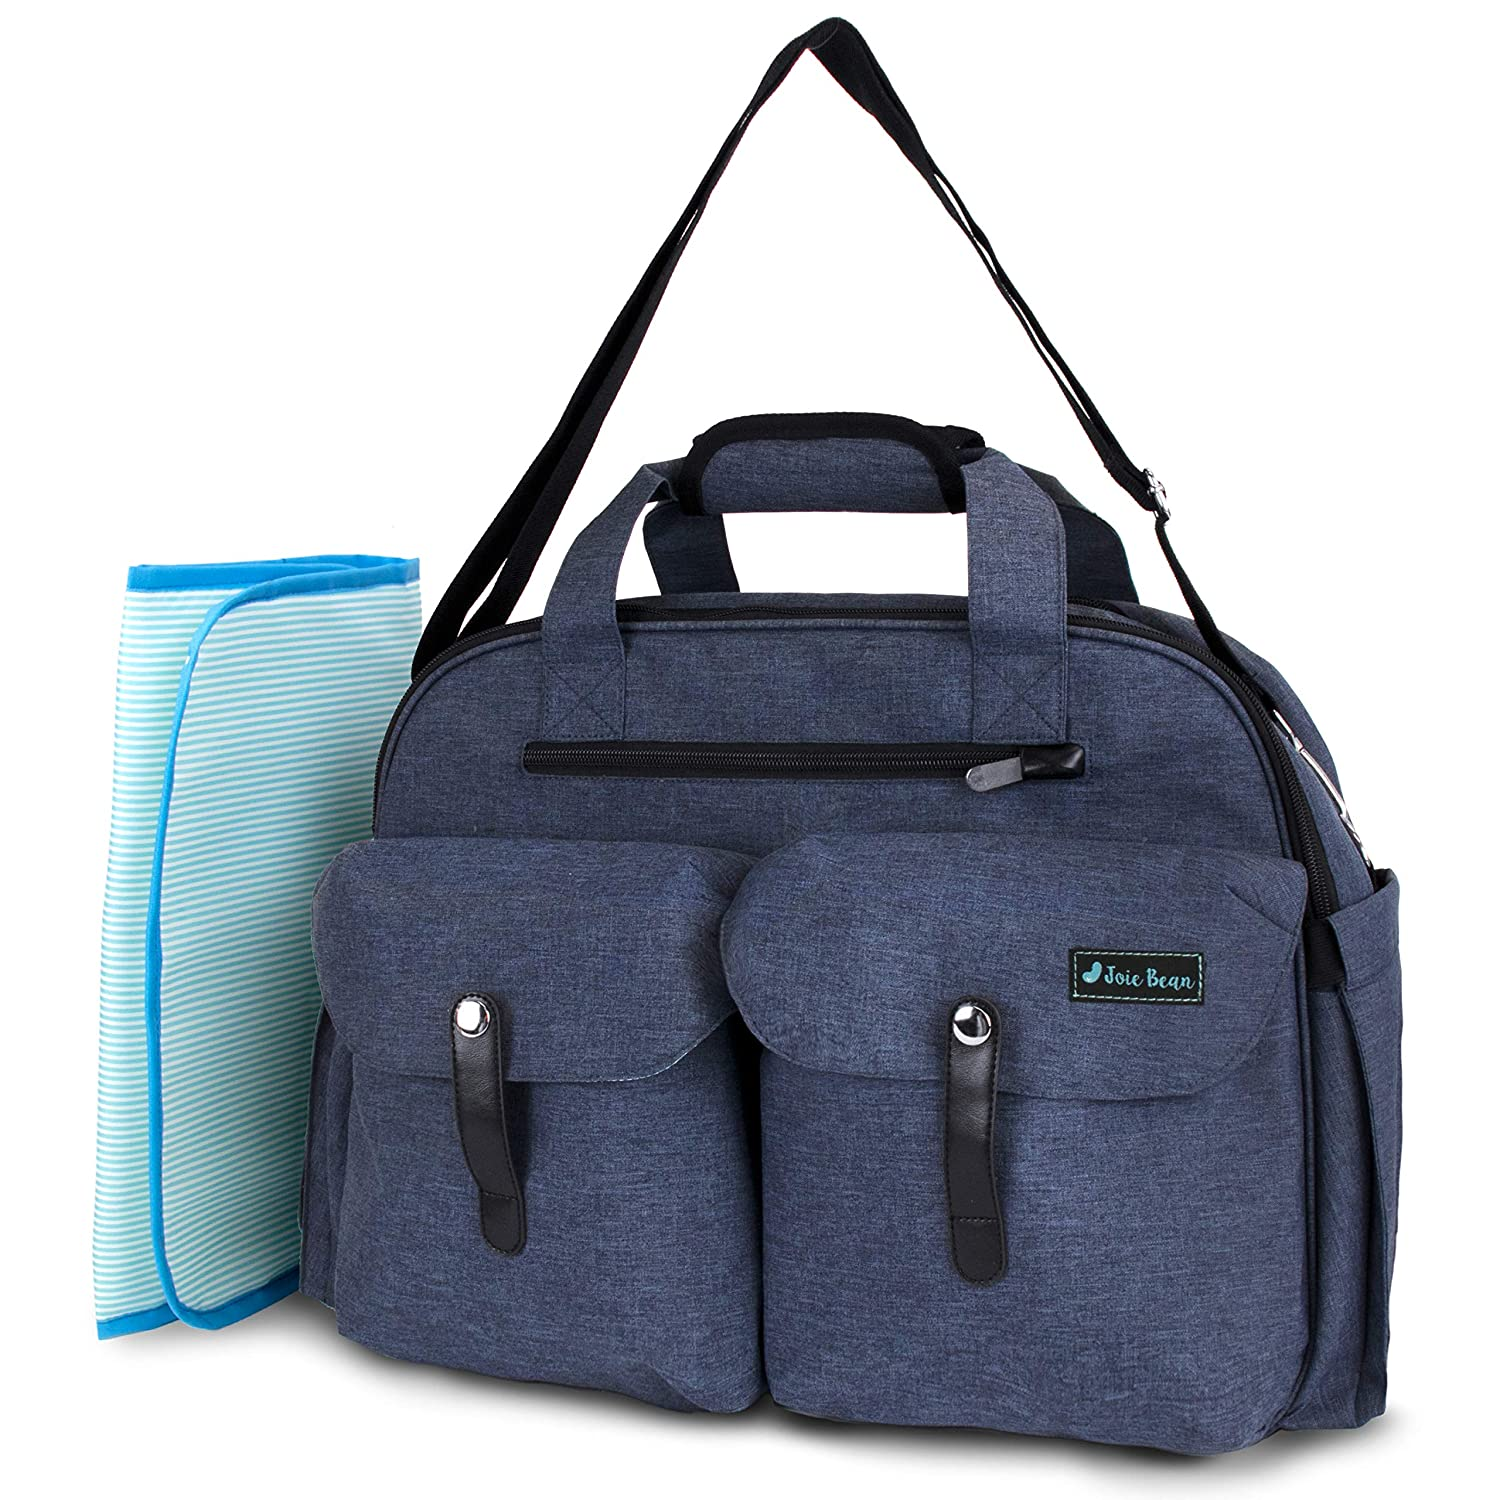 JOIE BEAN Tote Diaper Bag for Mom, Dad | Large Messenger Baby Bag with Shoulder Strap, Changing Mat, Insulated Pockets, Stroller Straps | Multi-Function Organizer Maternity Bag for Travel (Navy)